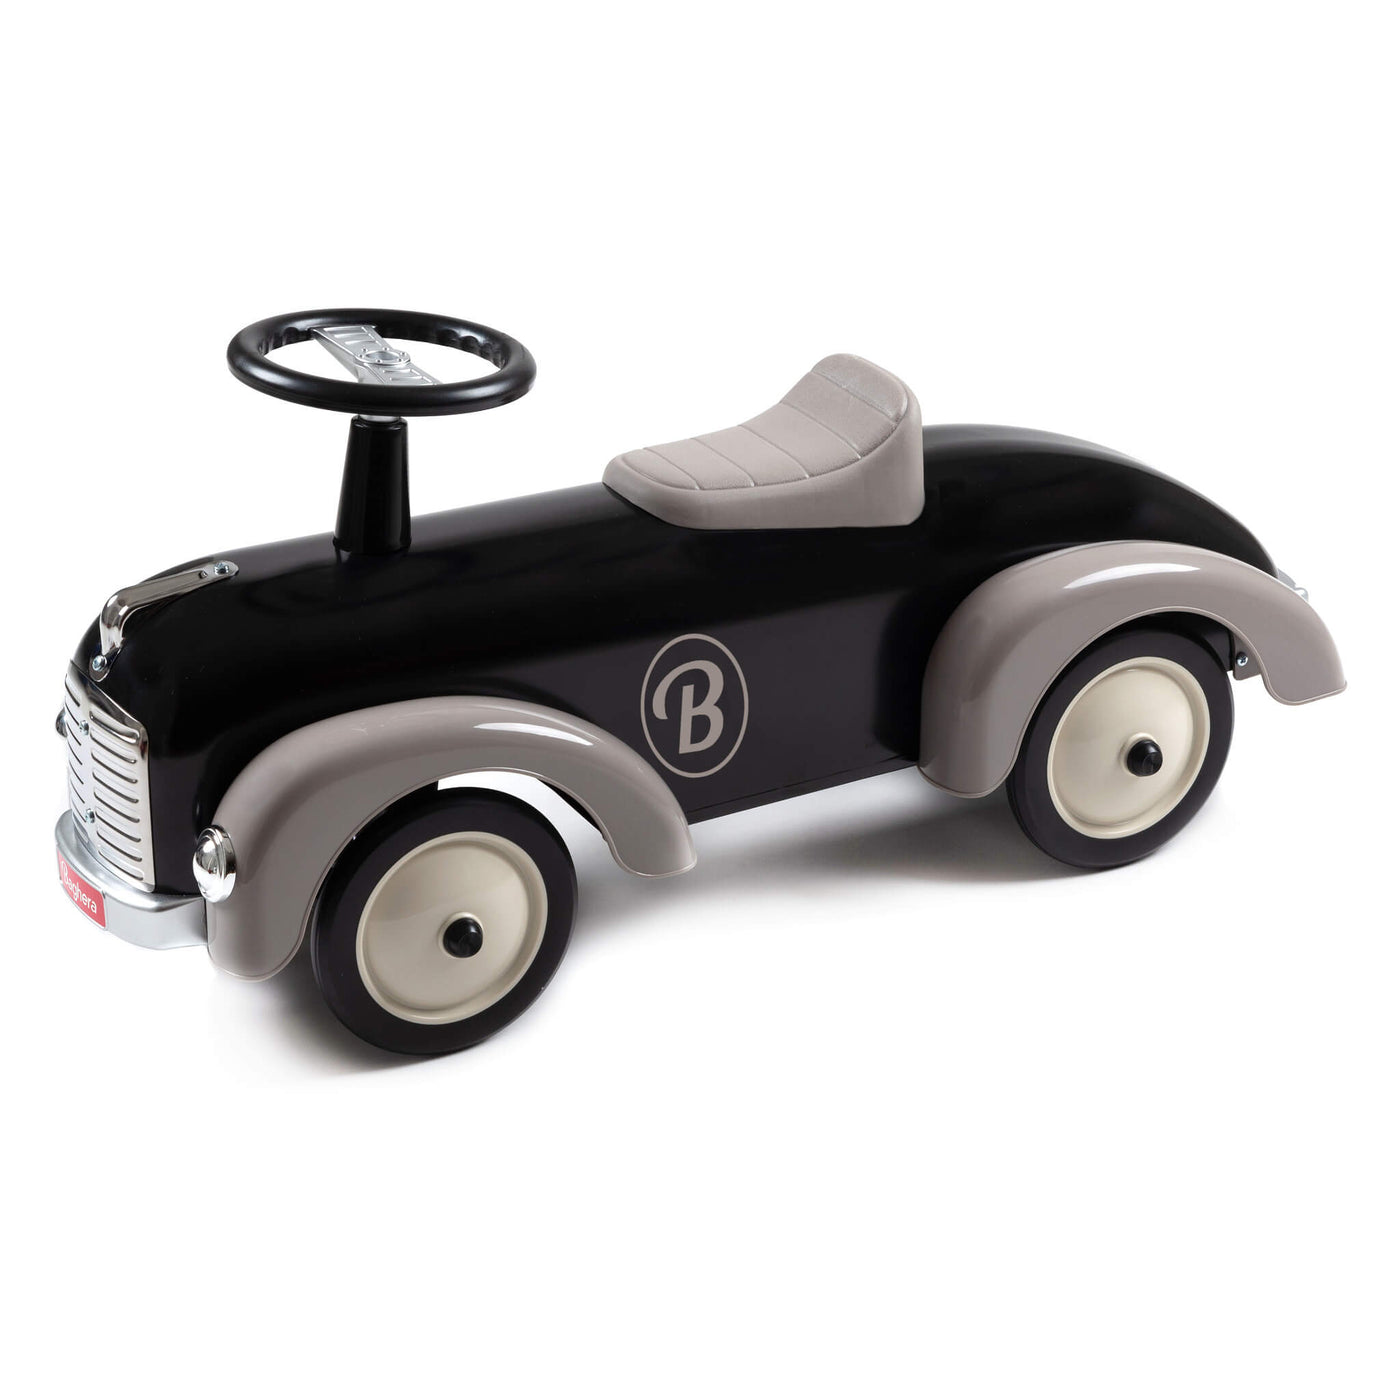 Speedstar Ride on Car - Black